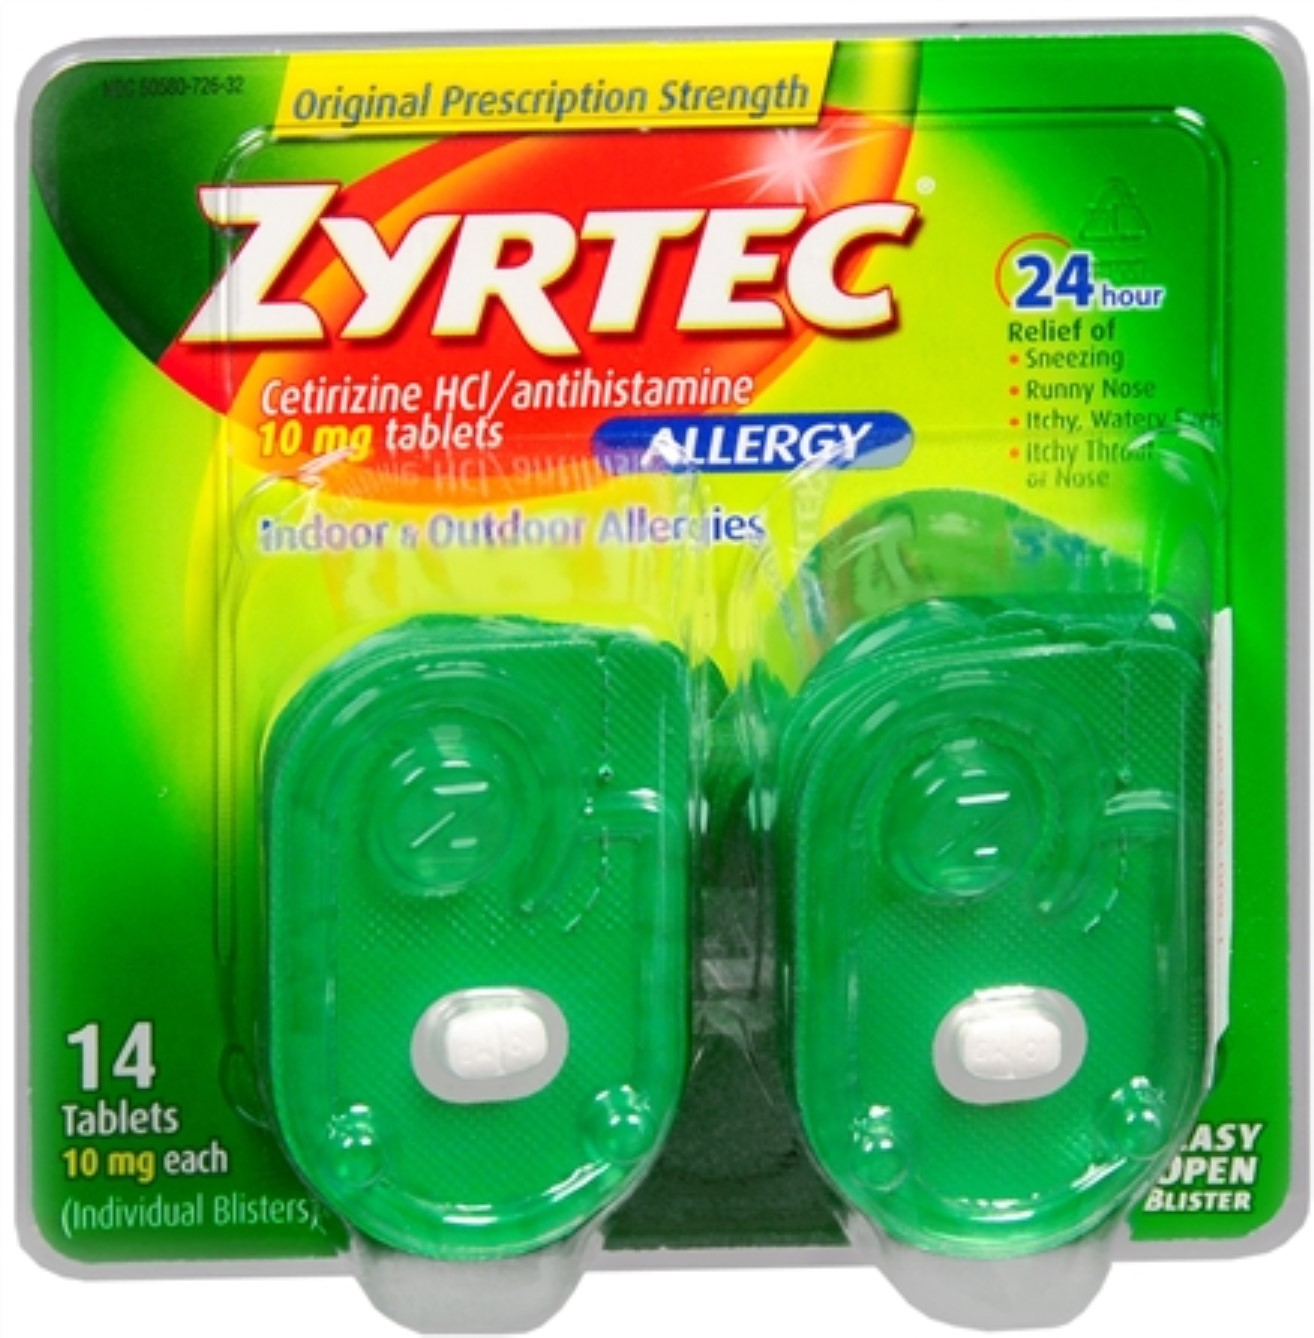 Zyrtec Allergy 10 mg Tablets Blister Pack 14 Tablets (Pack of 2)